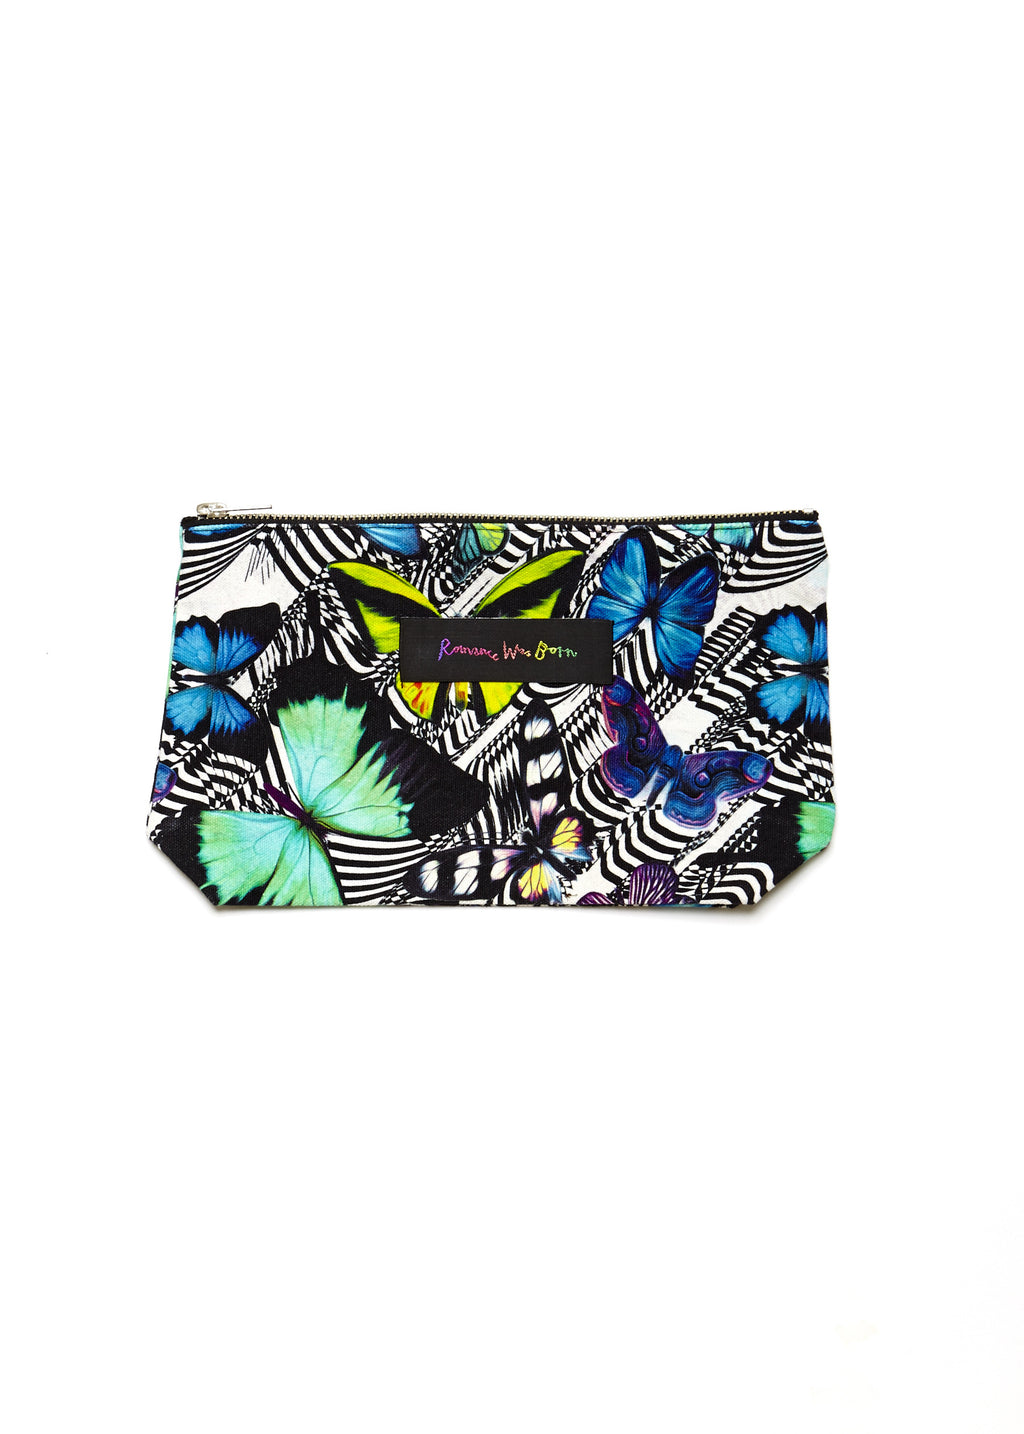 3D Purse (Blk & White/Butterfly)